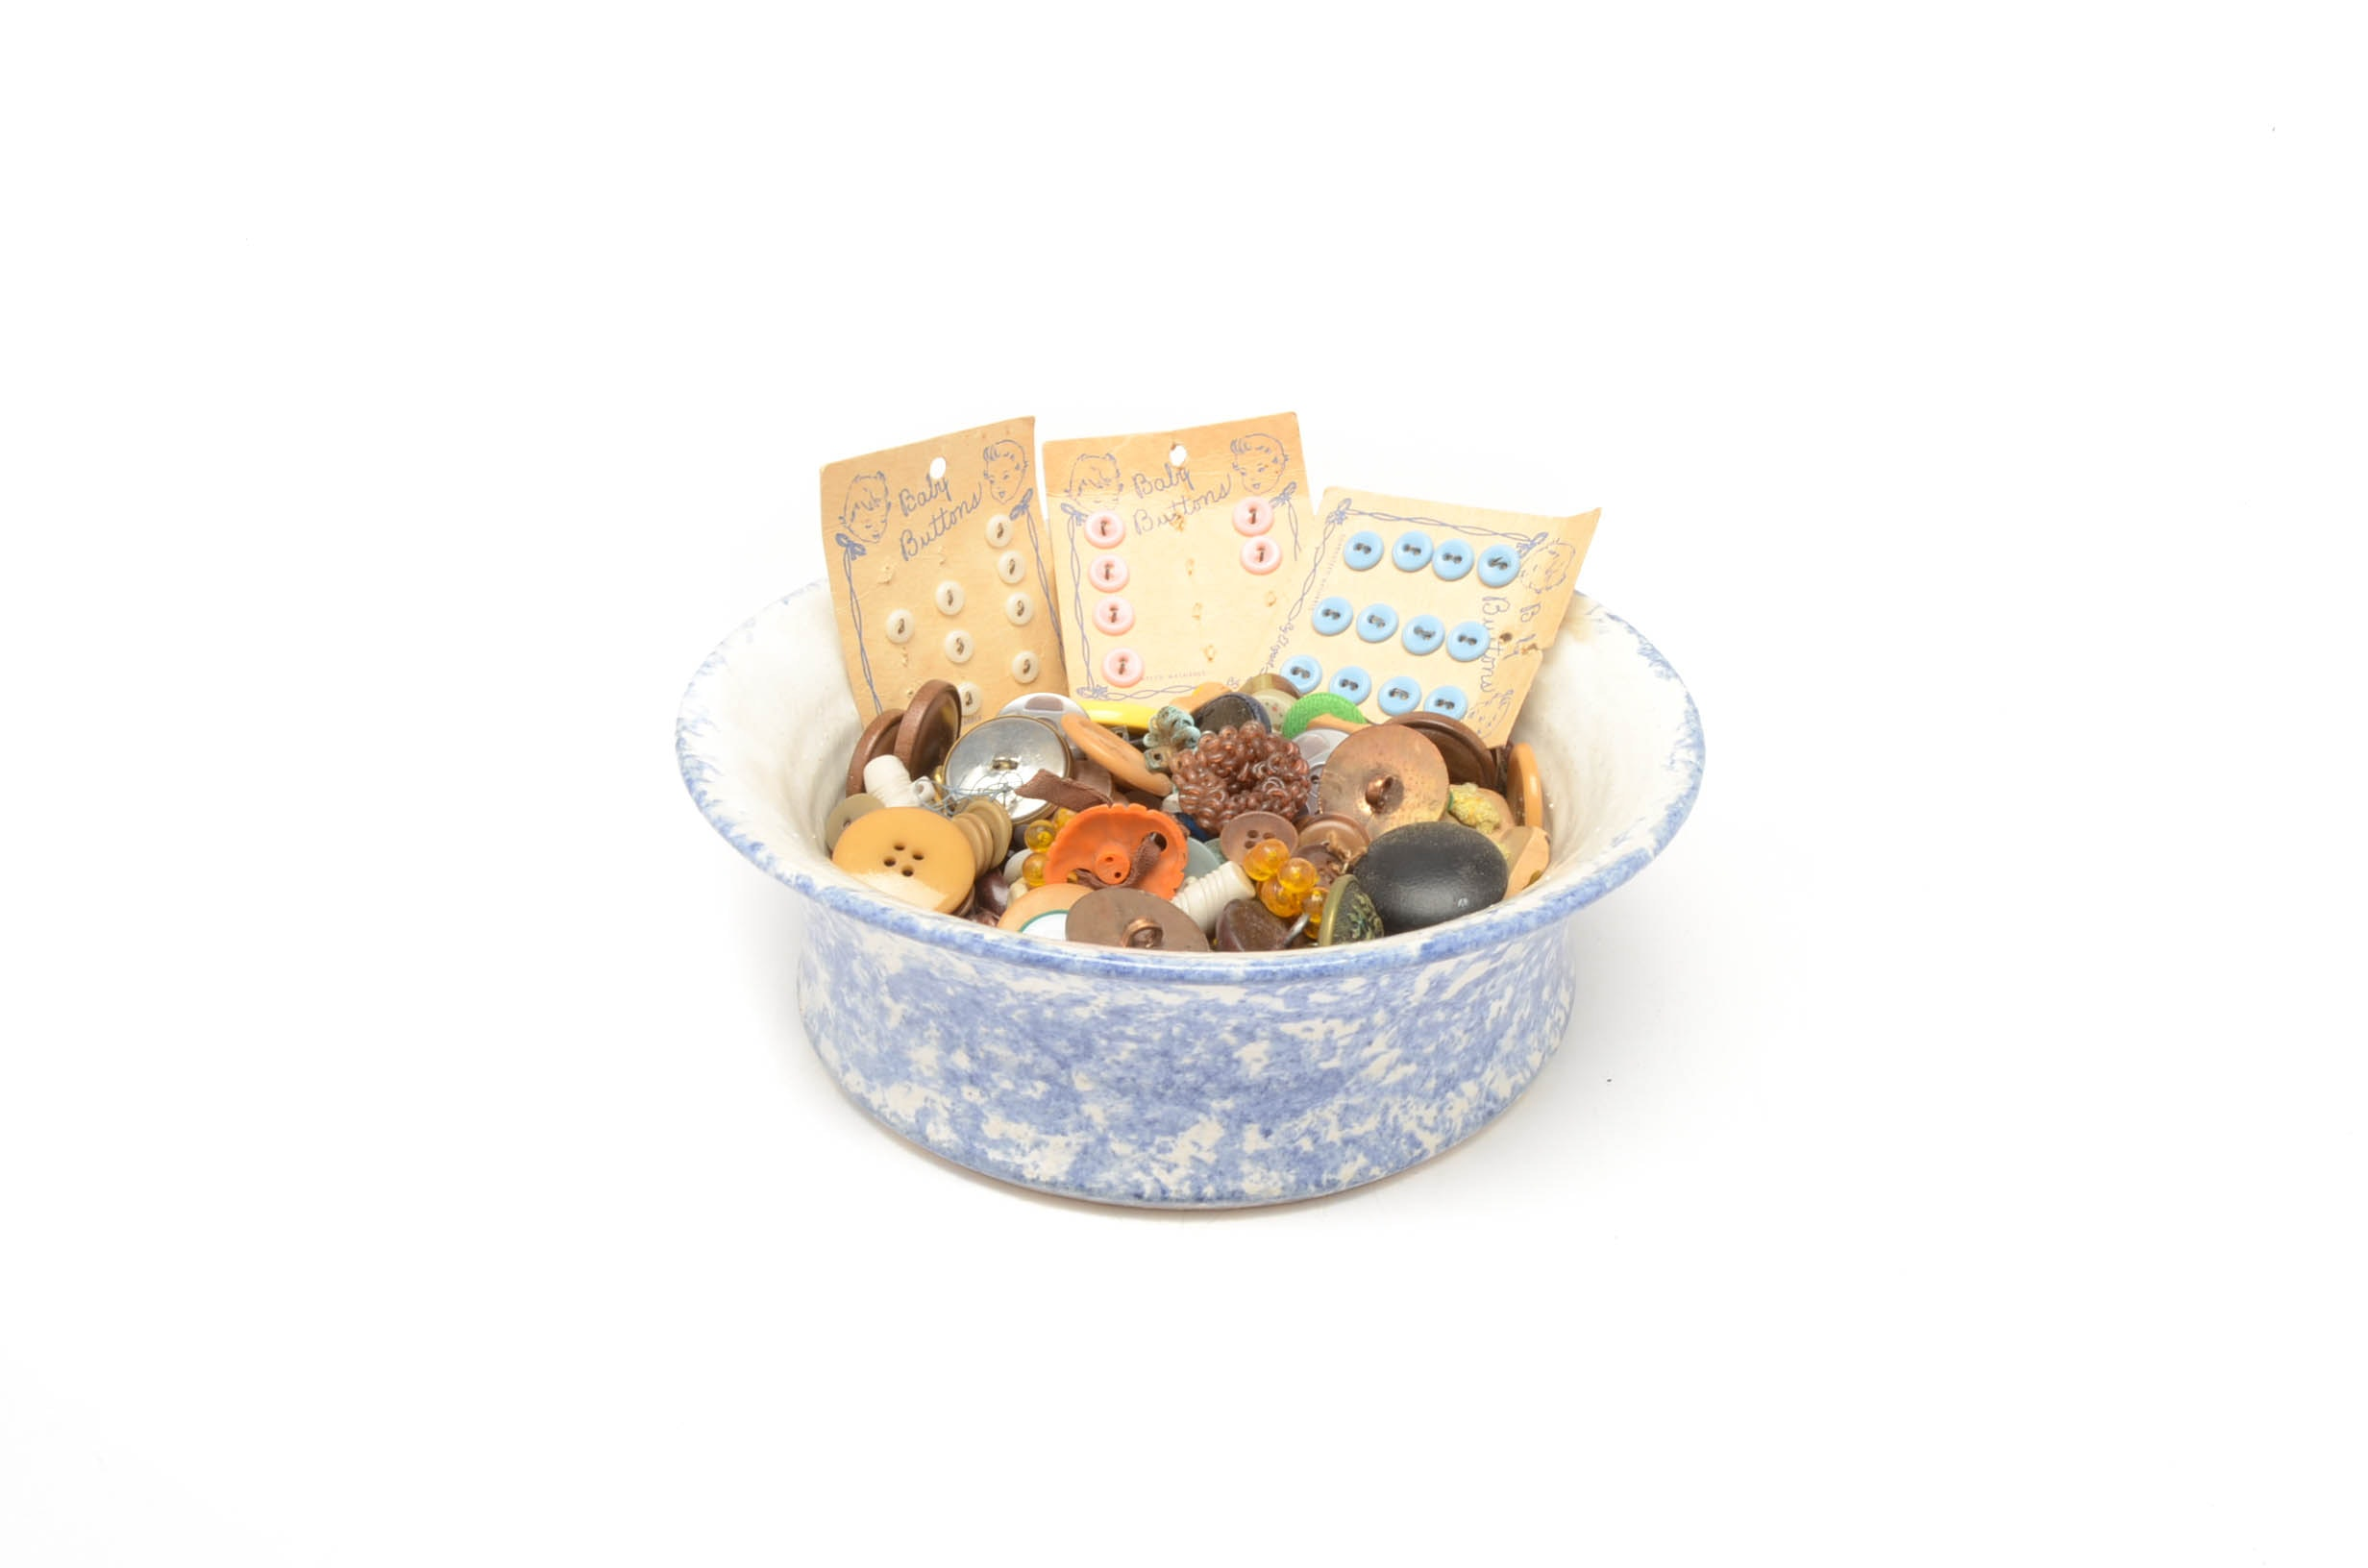 Blue Spongeware Ceramic Bowl with Button Collection